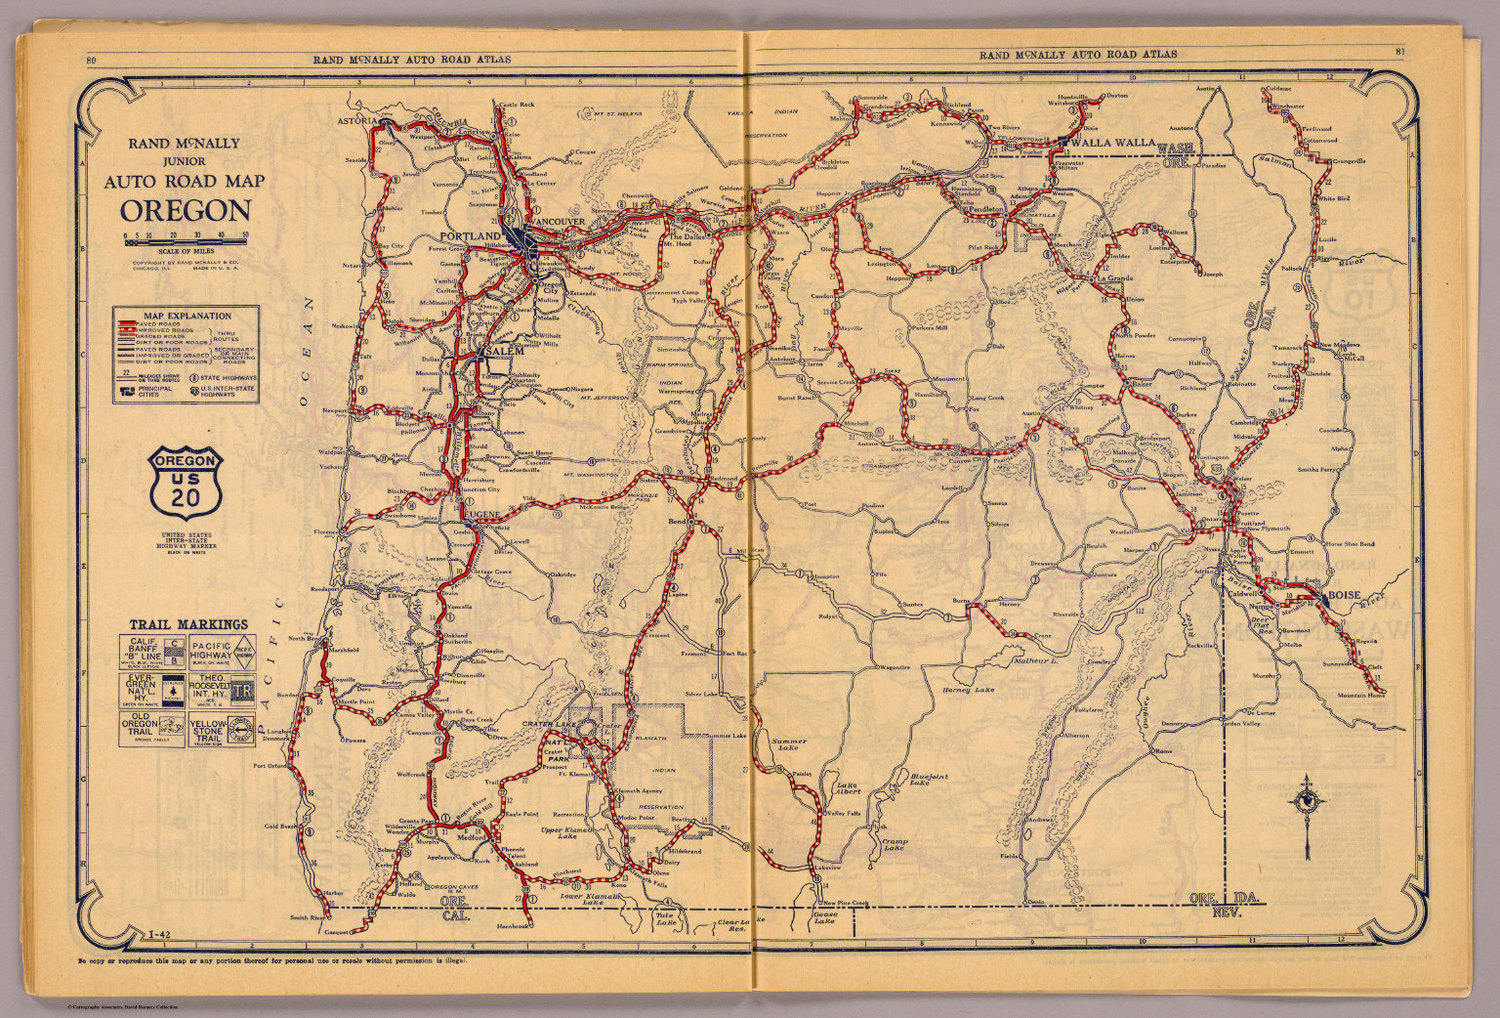 Summer Travels And Oregon Rest Areas Oregon Travel Experience - Map of oregon highways